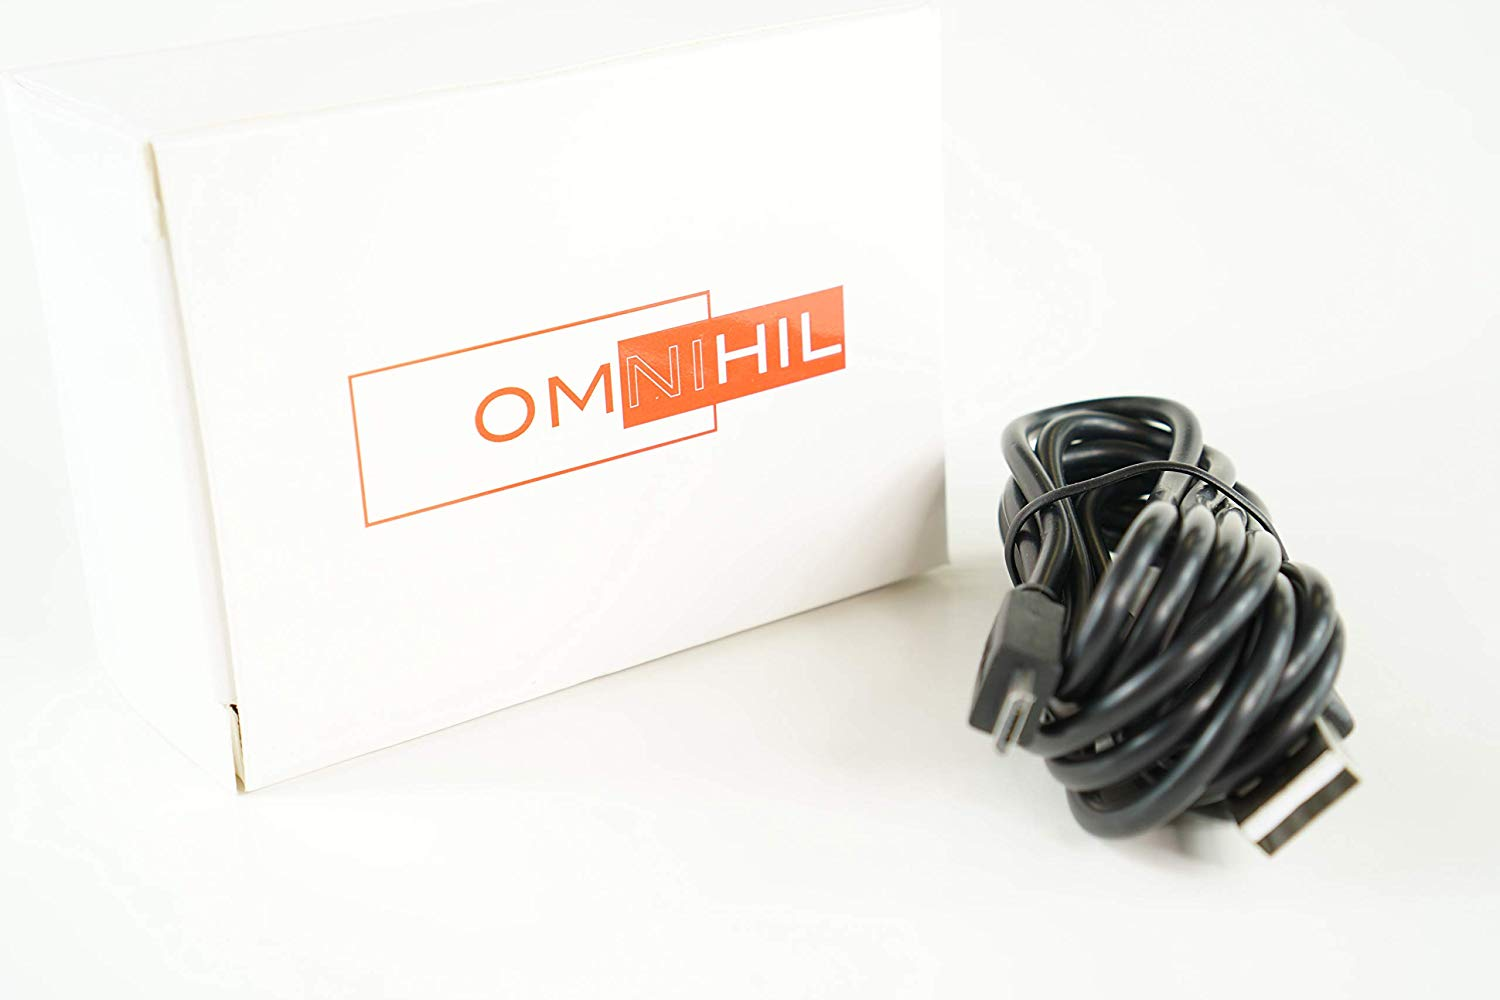 OMNIHIL 8 Feet Long High Speed USB 2.0 Cable Compatible with HP VP6320